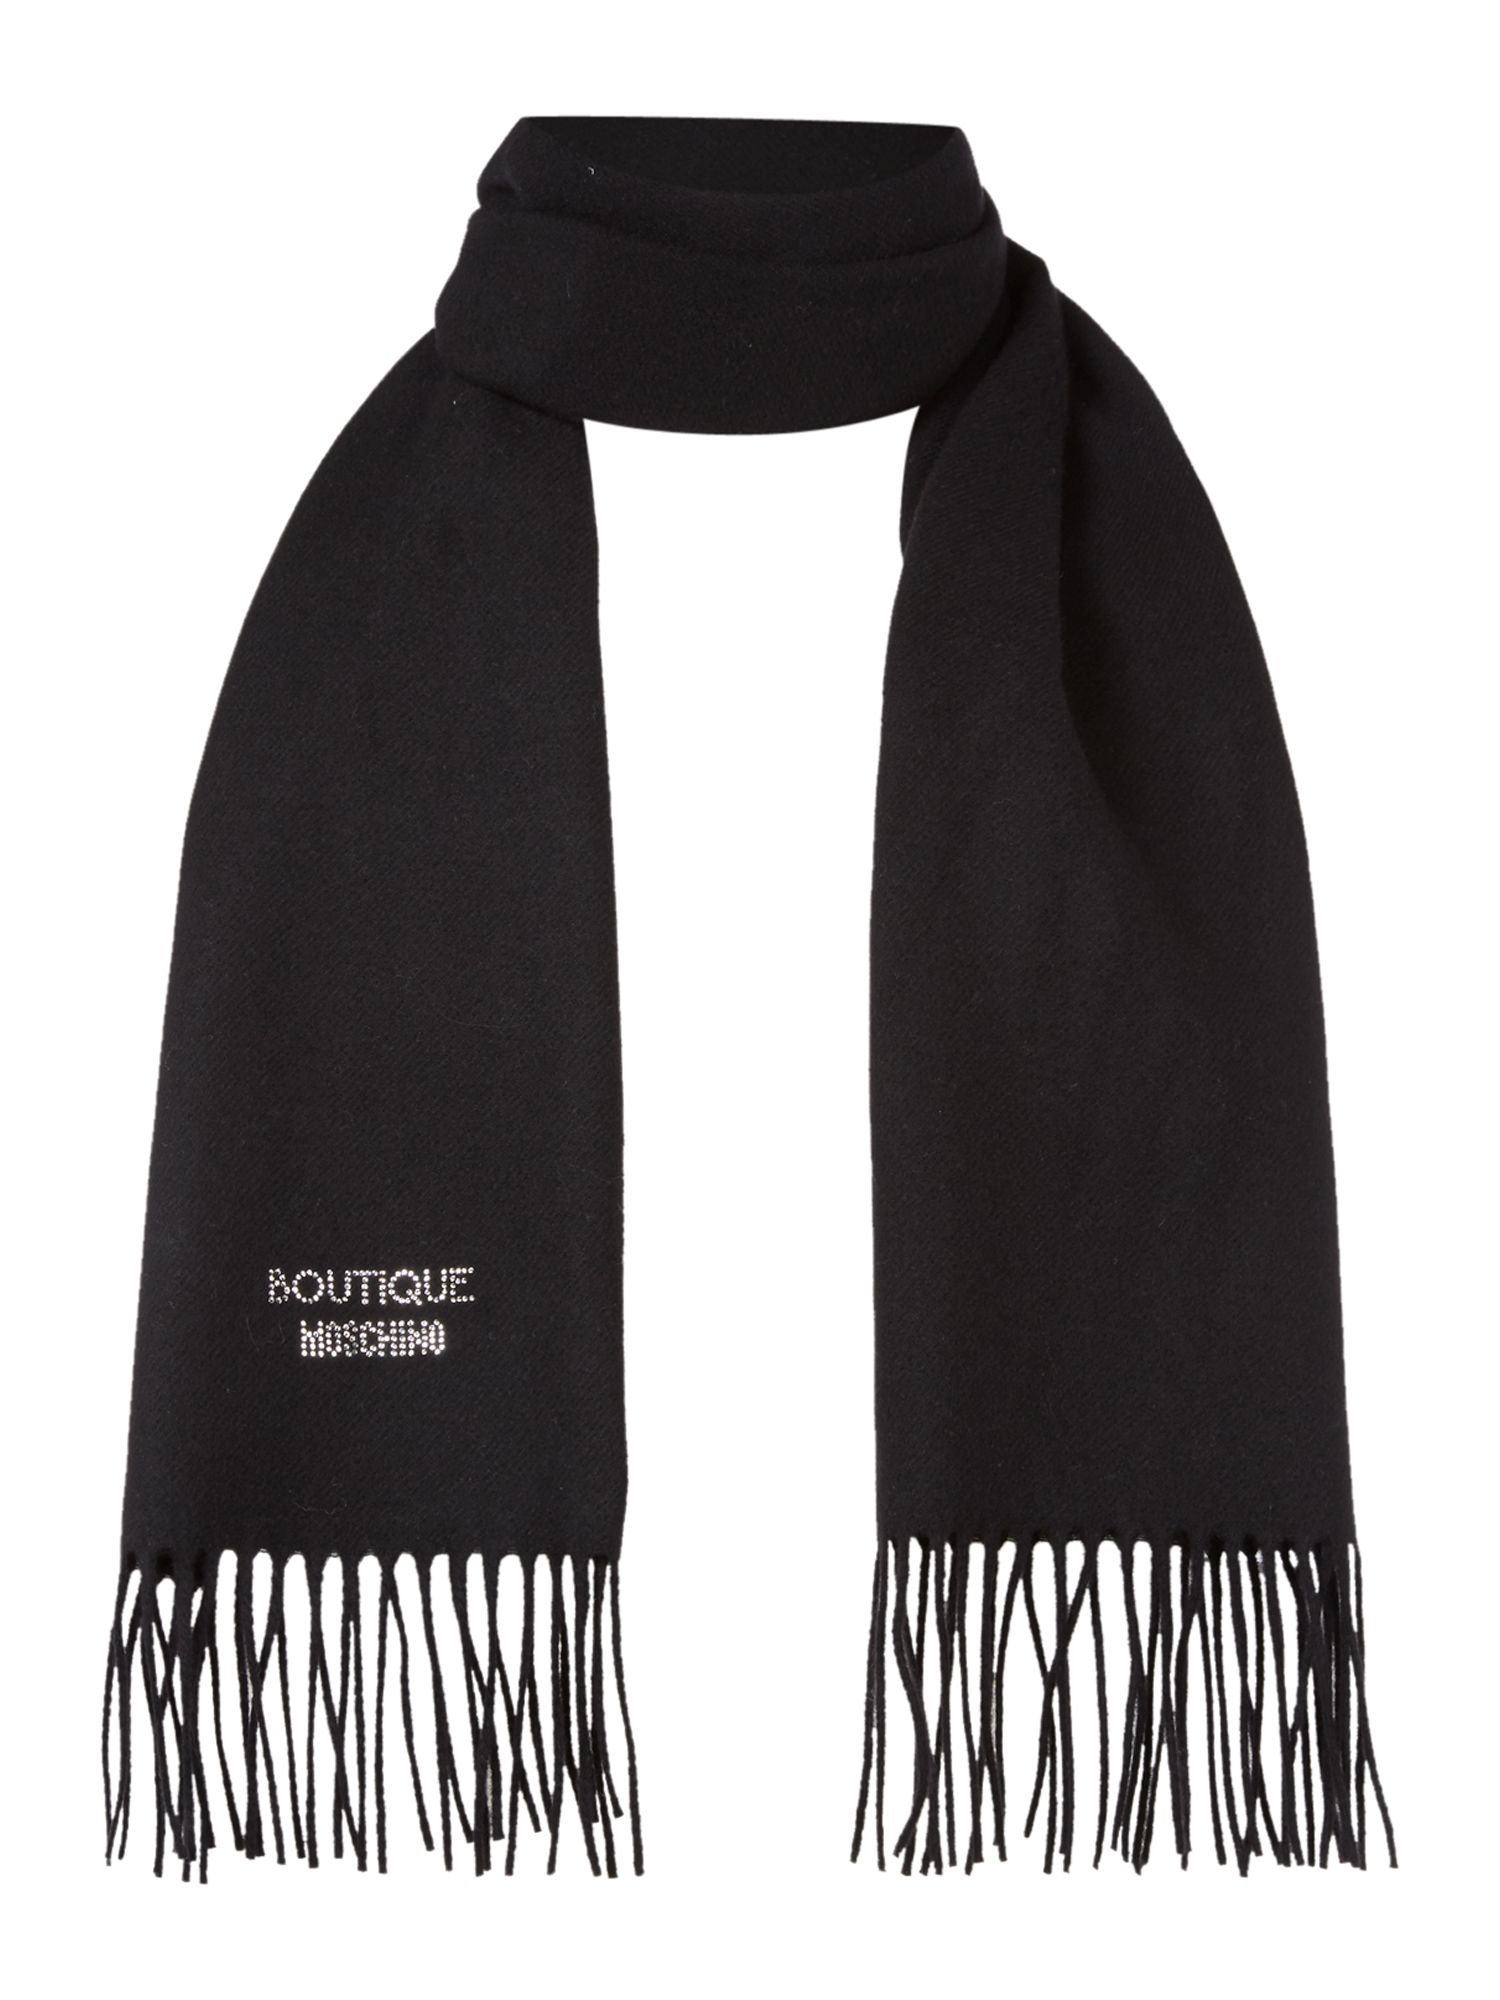 Boutique Moschino Boutique Moschino Diamante logo scarf, Black